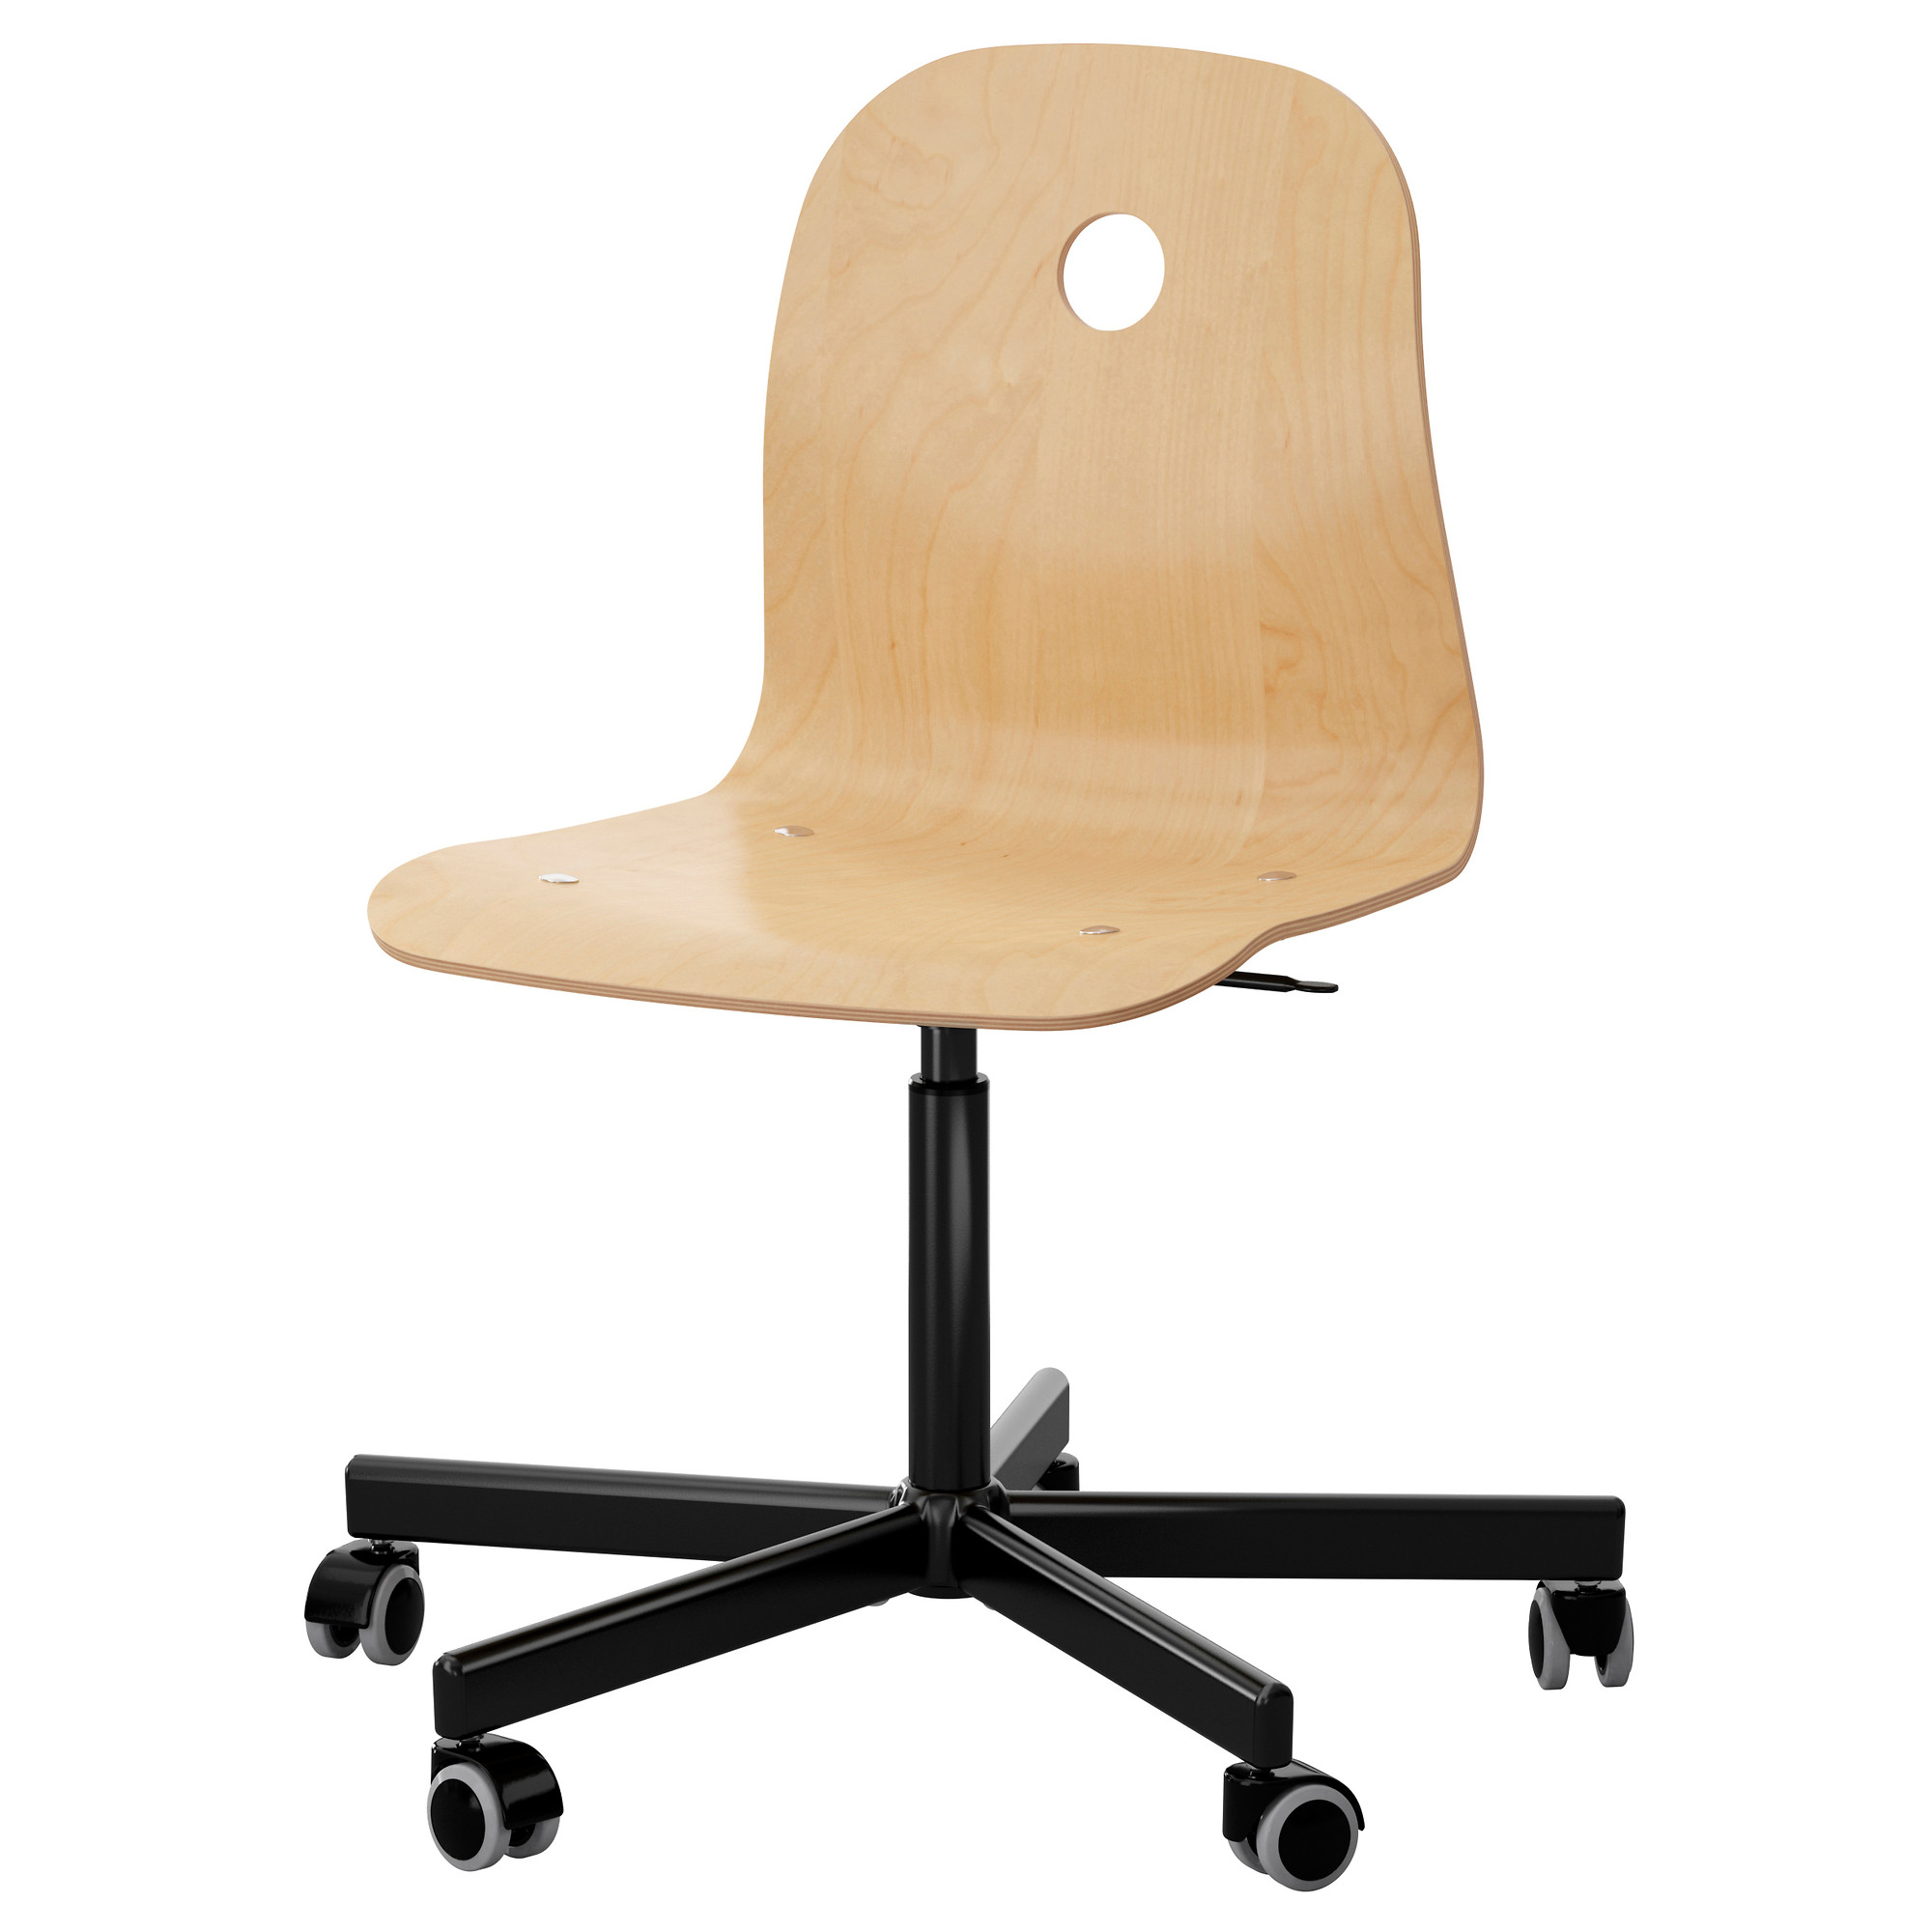 V 197 Gsberg Sporren Swivel Chair Birch Veneer Black Ikea